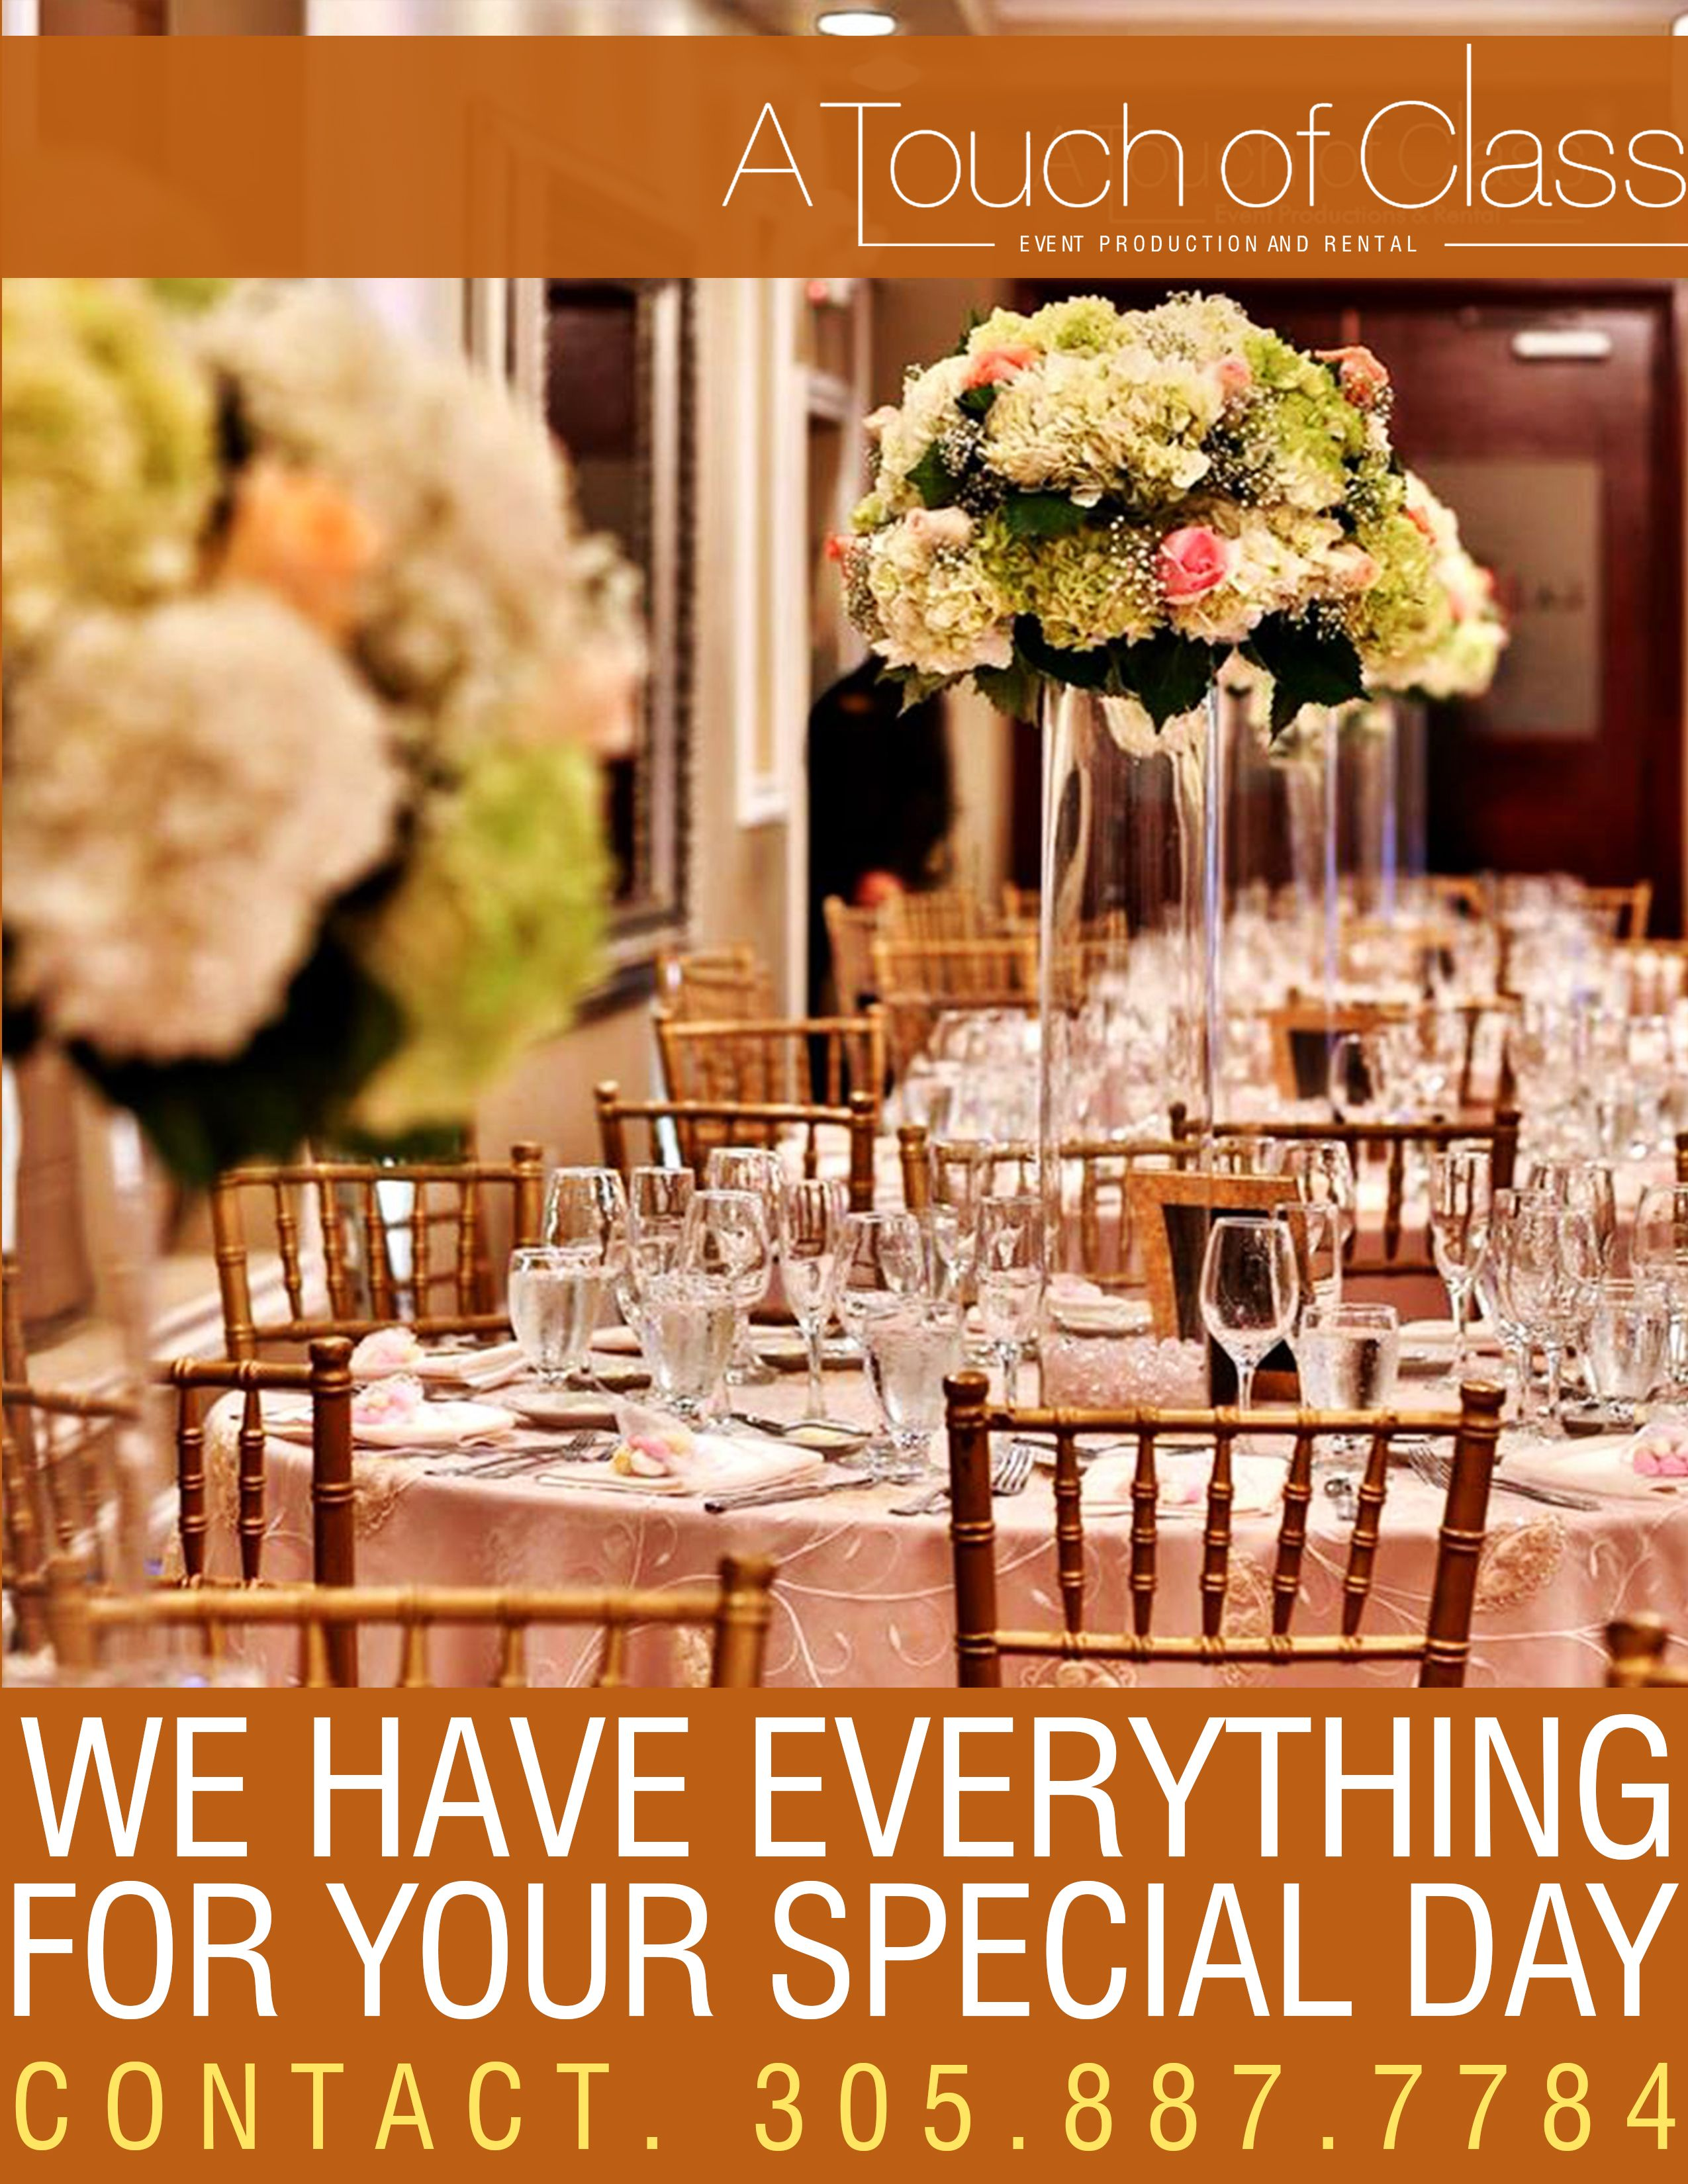 Luxury Event Rentals in Miami by A Touch Of Class. Call us now for more information (305) 887-7784 or visit our site   #atouchofclass #atclinen #SweetWeddingMoments #WeddingInspiration #WeddingCake #WeddingIdeas #WeddingReception #Romance #BridalFashionWeek #BeautifulBride #WeddingSeason #Glam #DestinationWedding #WeddingPlanning #LuxuryWeddings #IDo #Bridesmaid